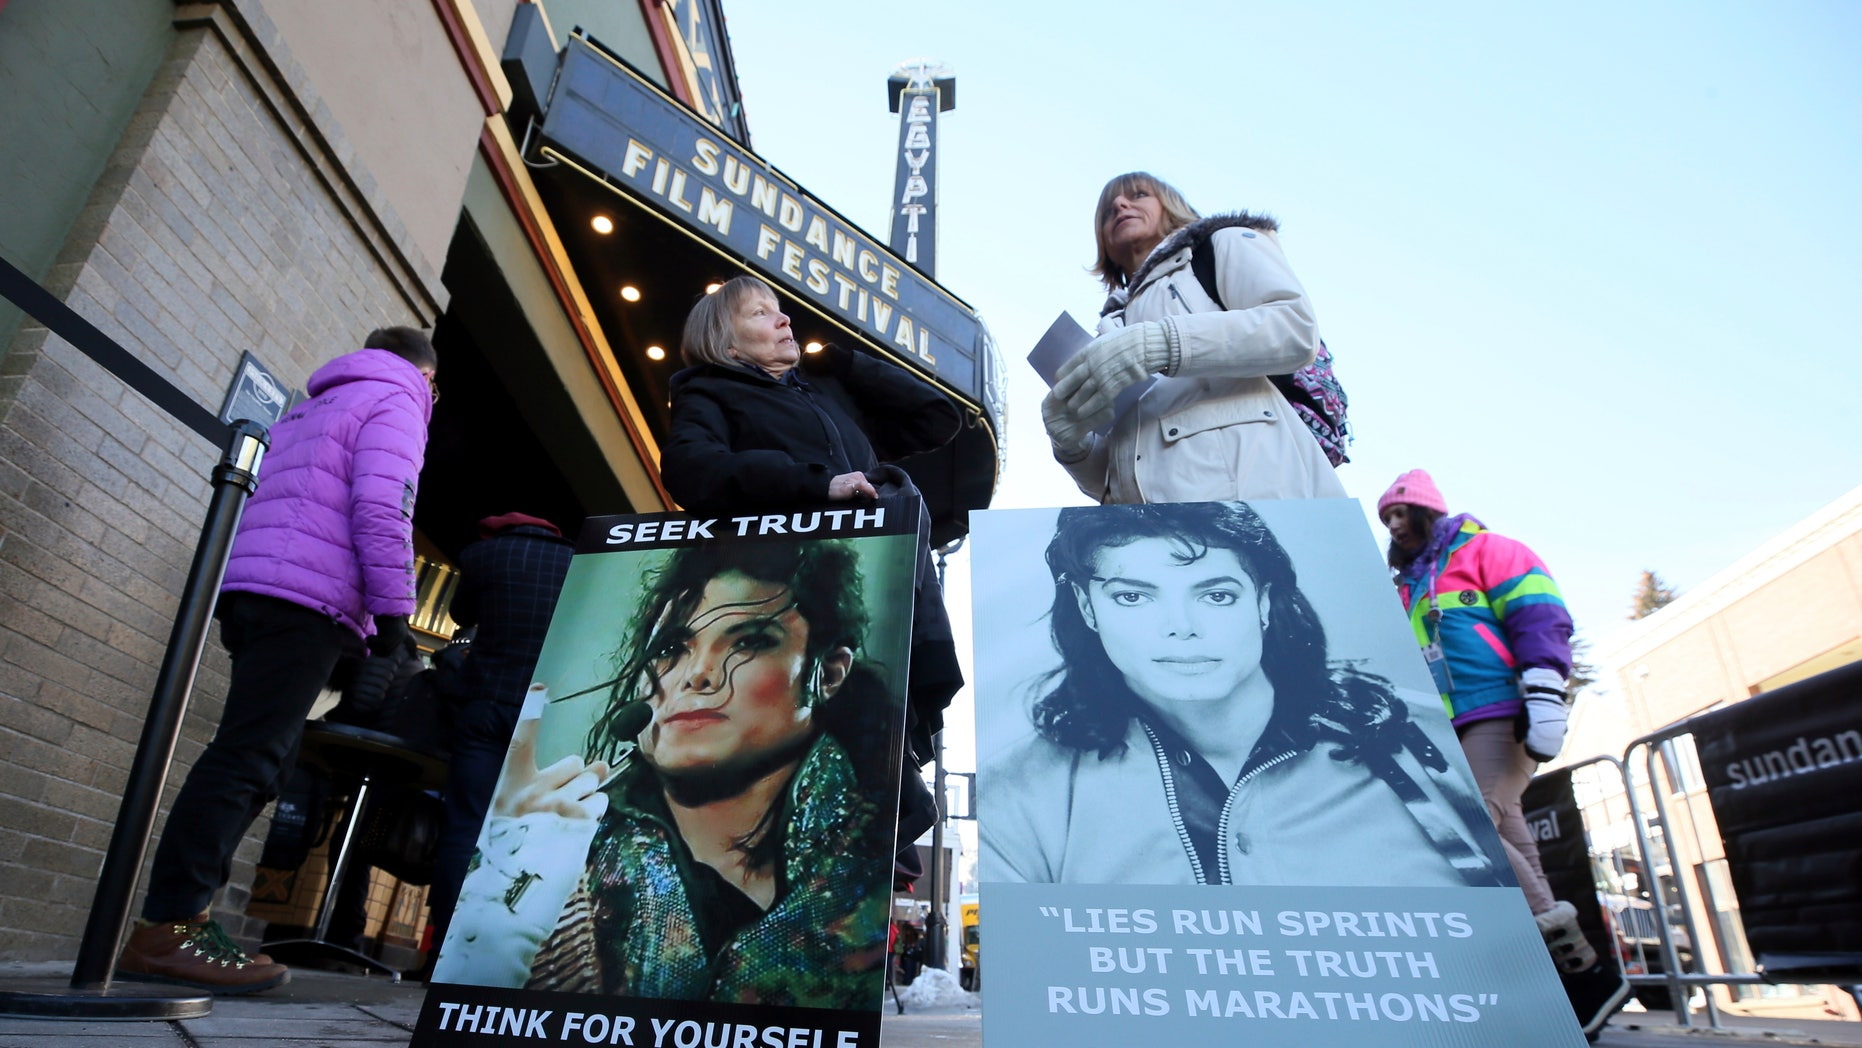 Protestors face the debut of Leaving Neverland, a documentary that investigates abuse claims against Michael Jackson. His legacy responded when he set the film up as protesters